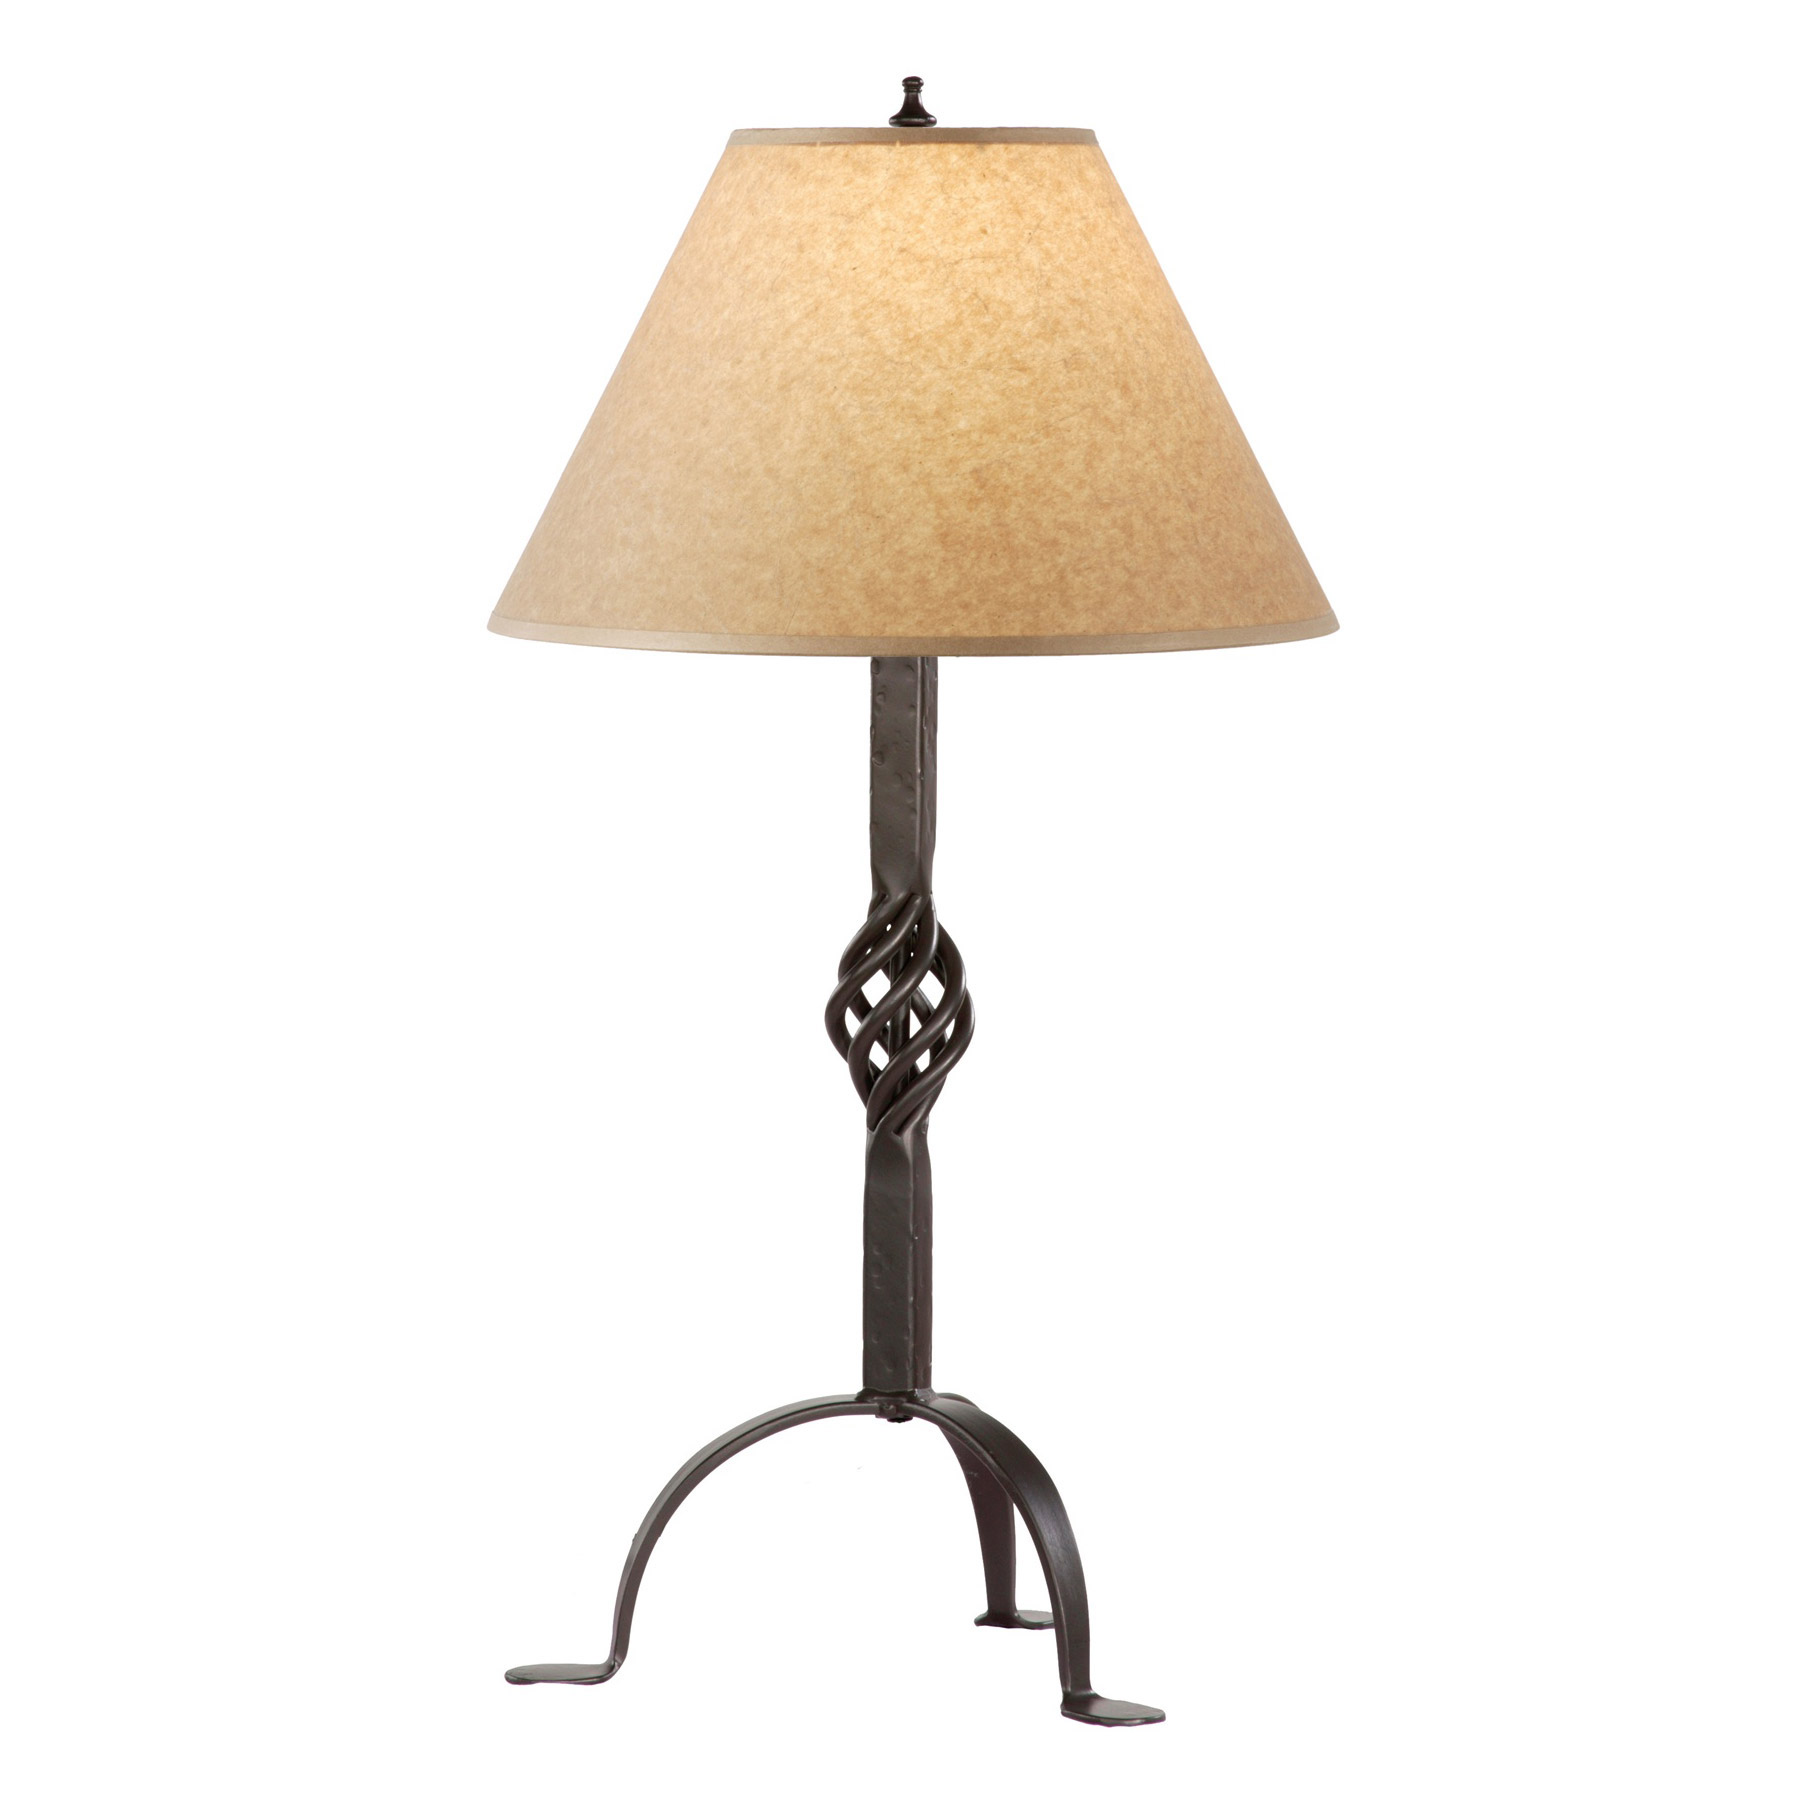 Black iron table lamp - Conclusion